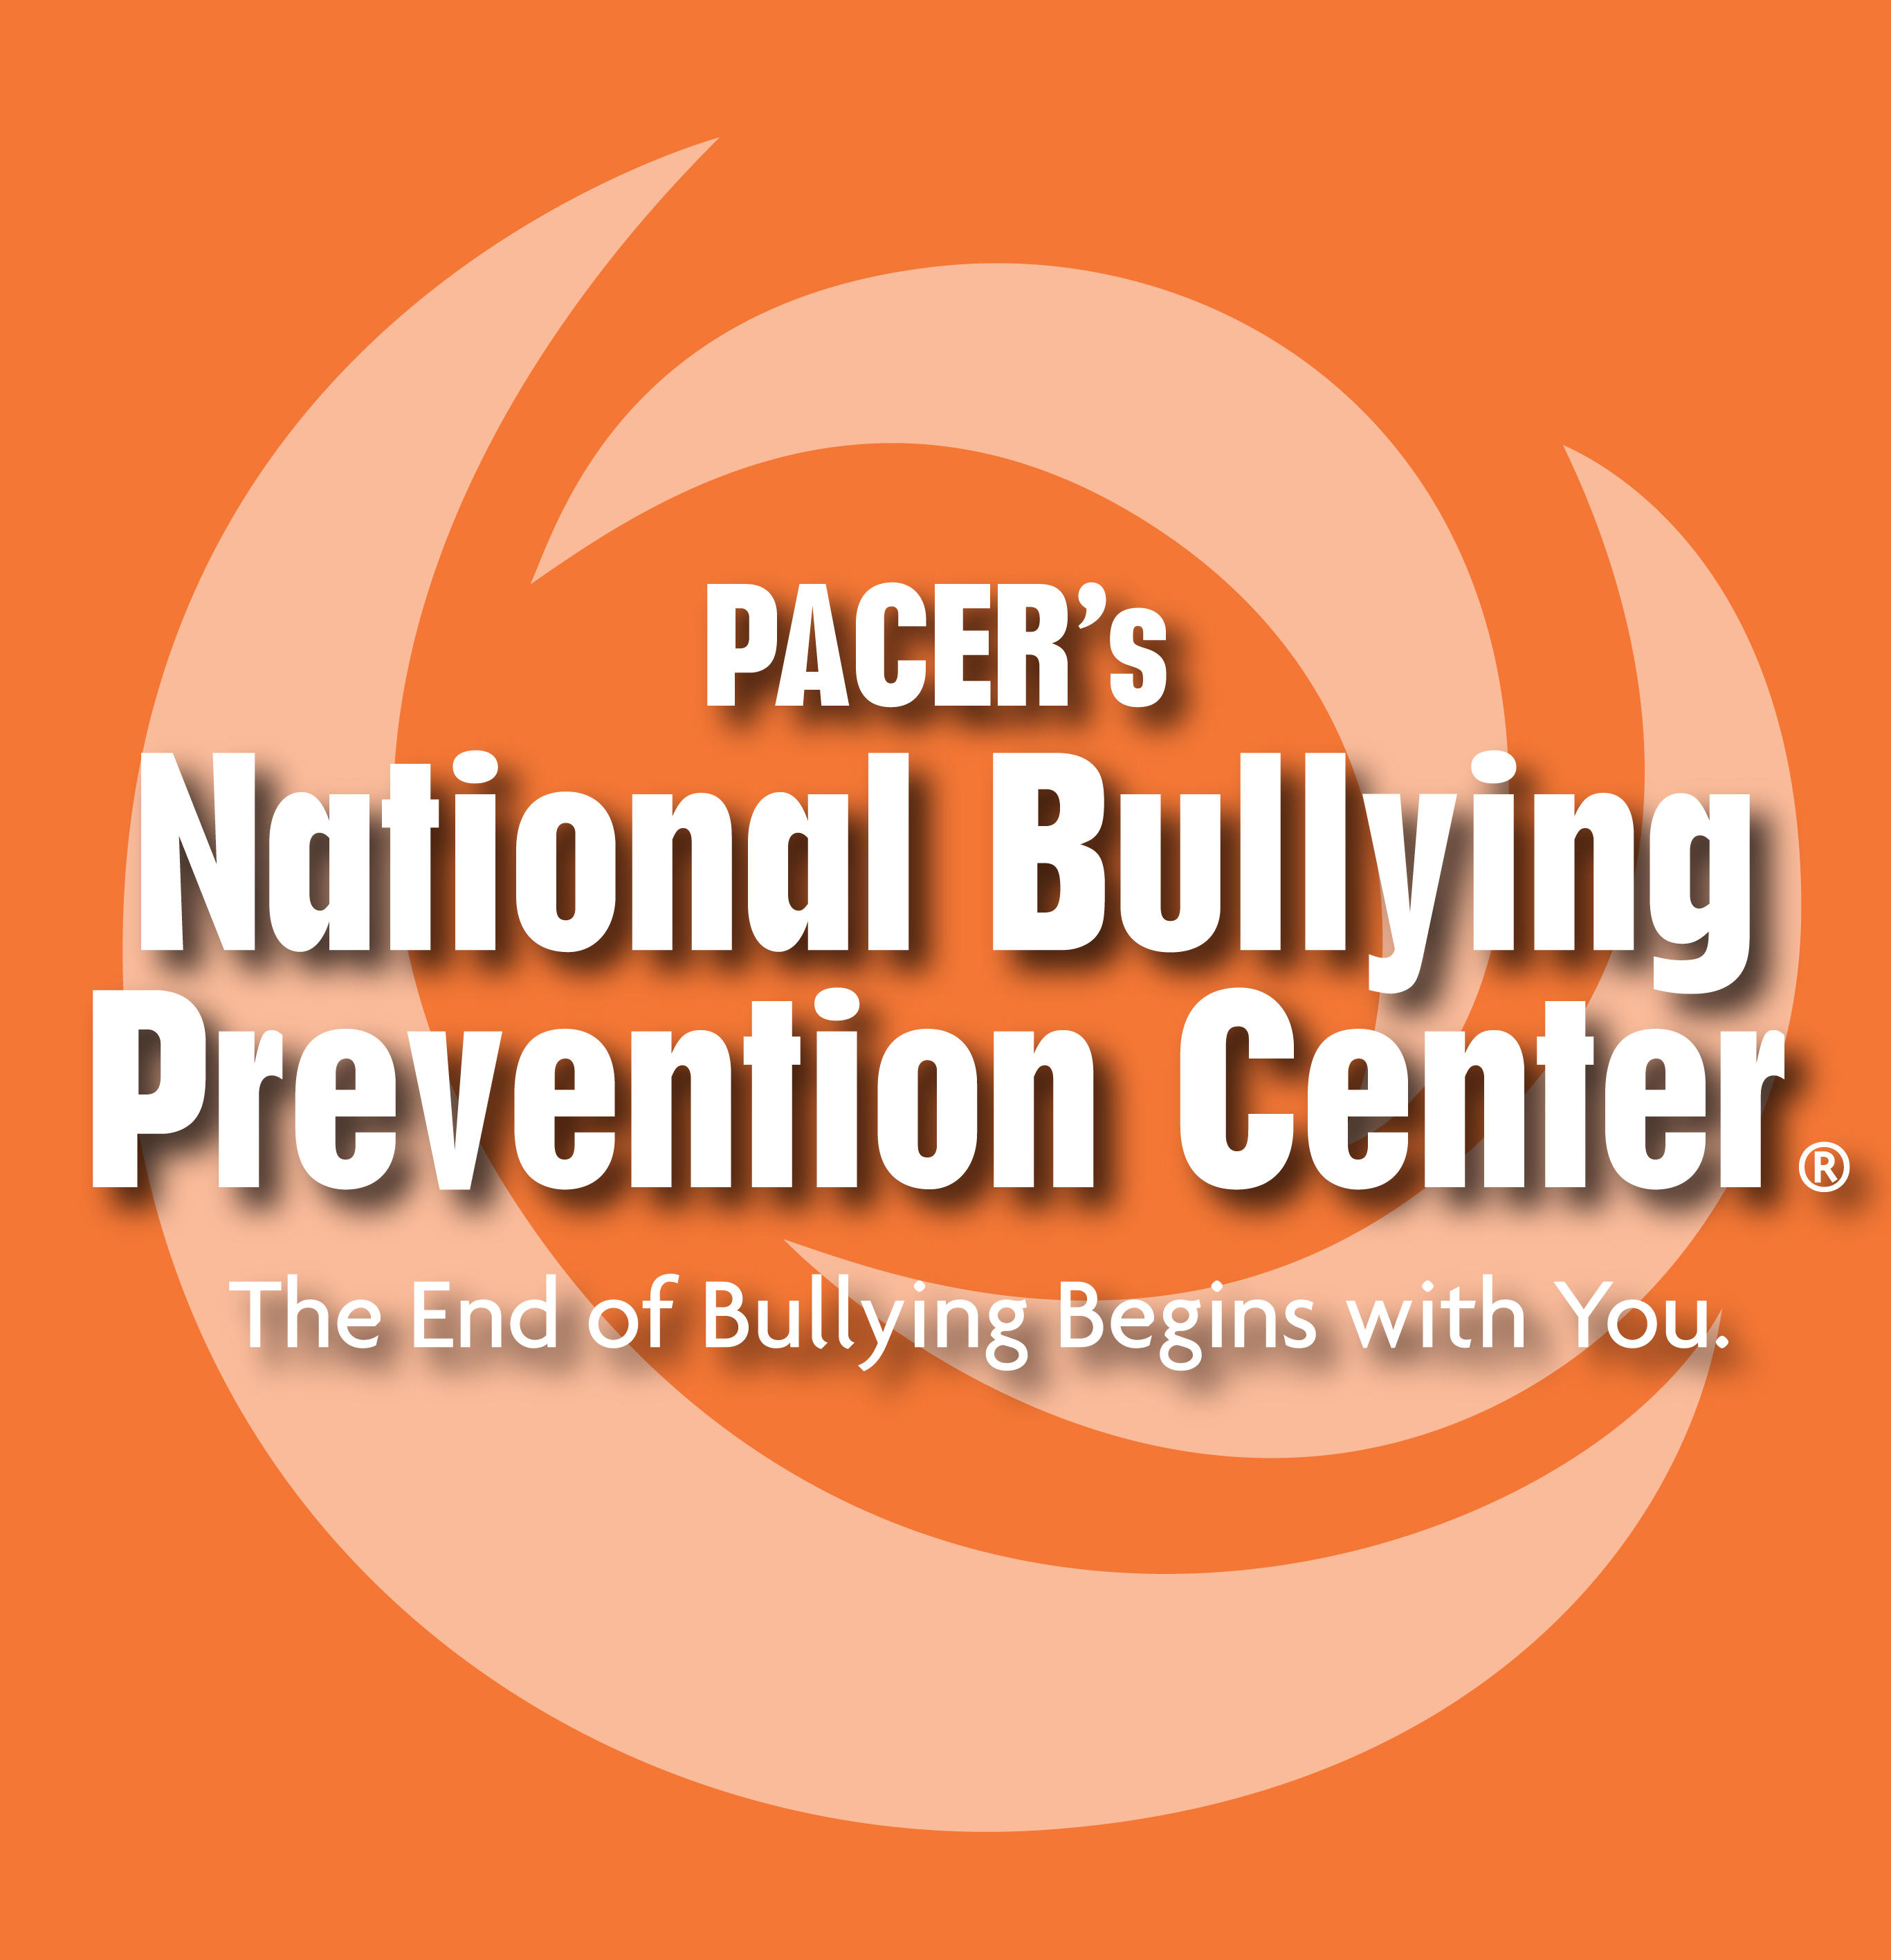 PACER National Bullying Prevention Center logo